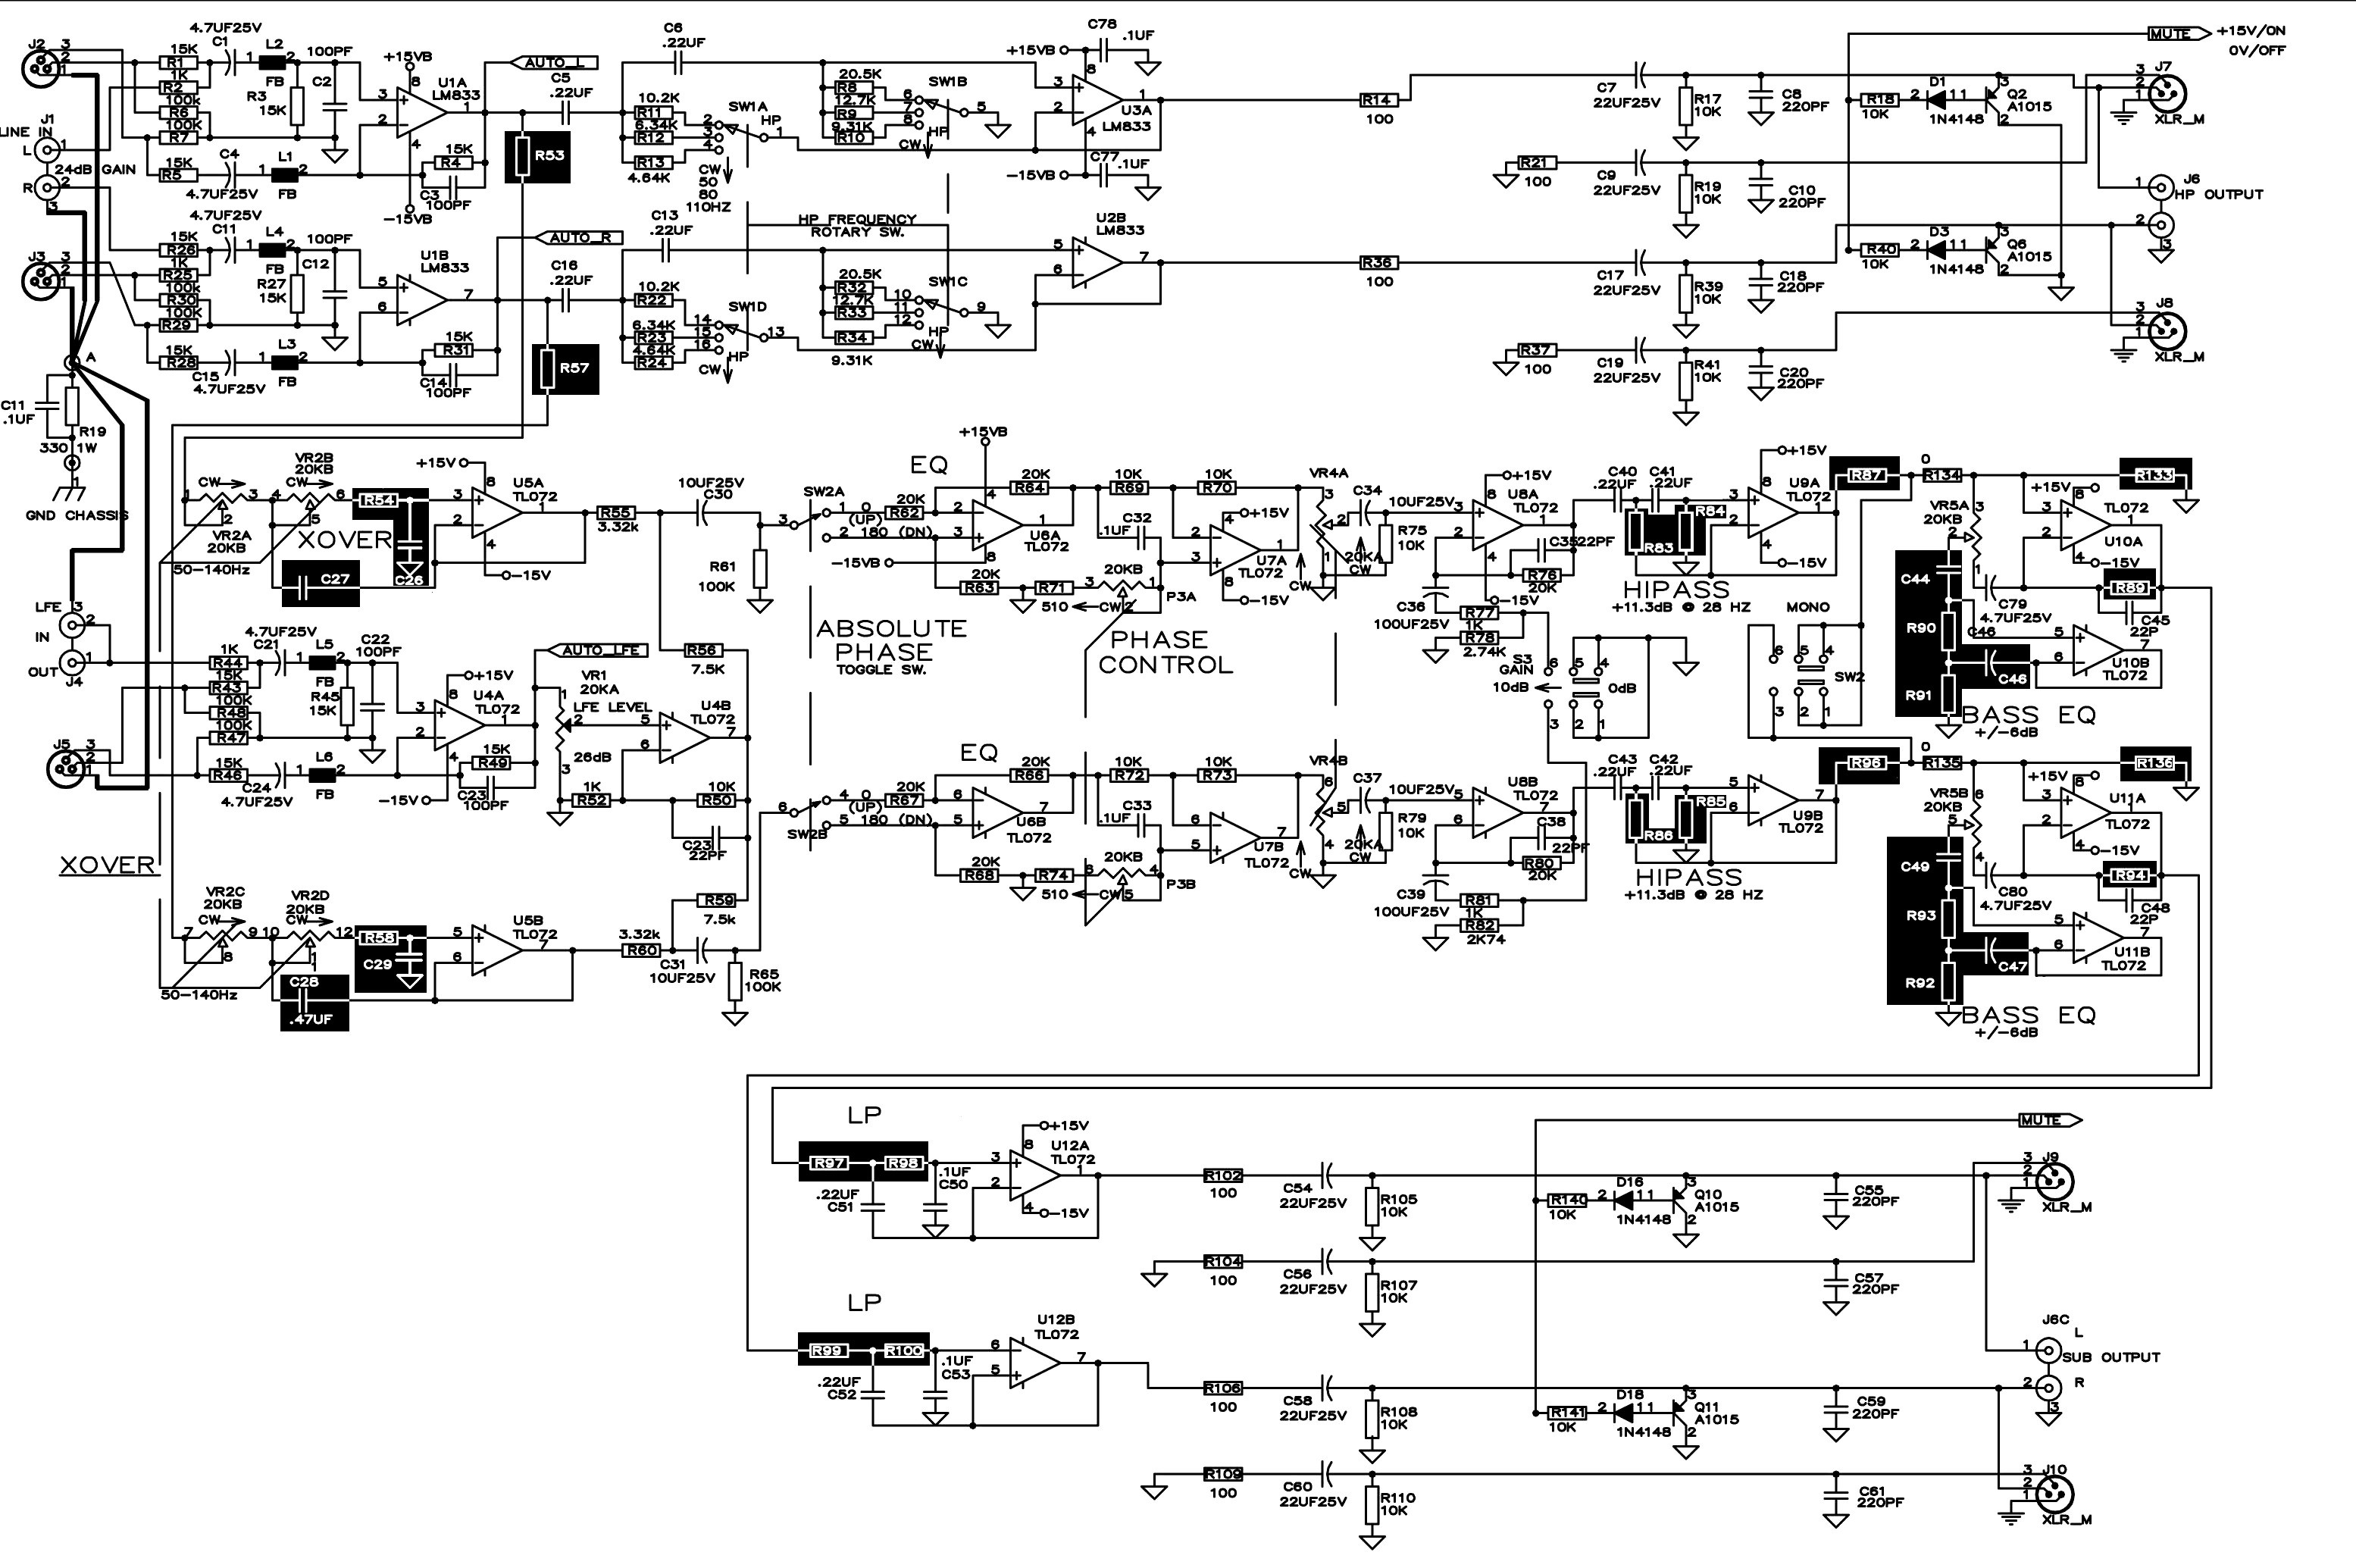 Crossover Wiring White Black Red Yellow Green Wiring Diagram Technic Crossover Wiring White Black Red Yellow Green